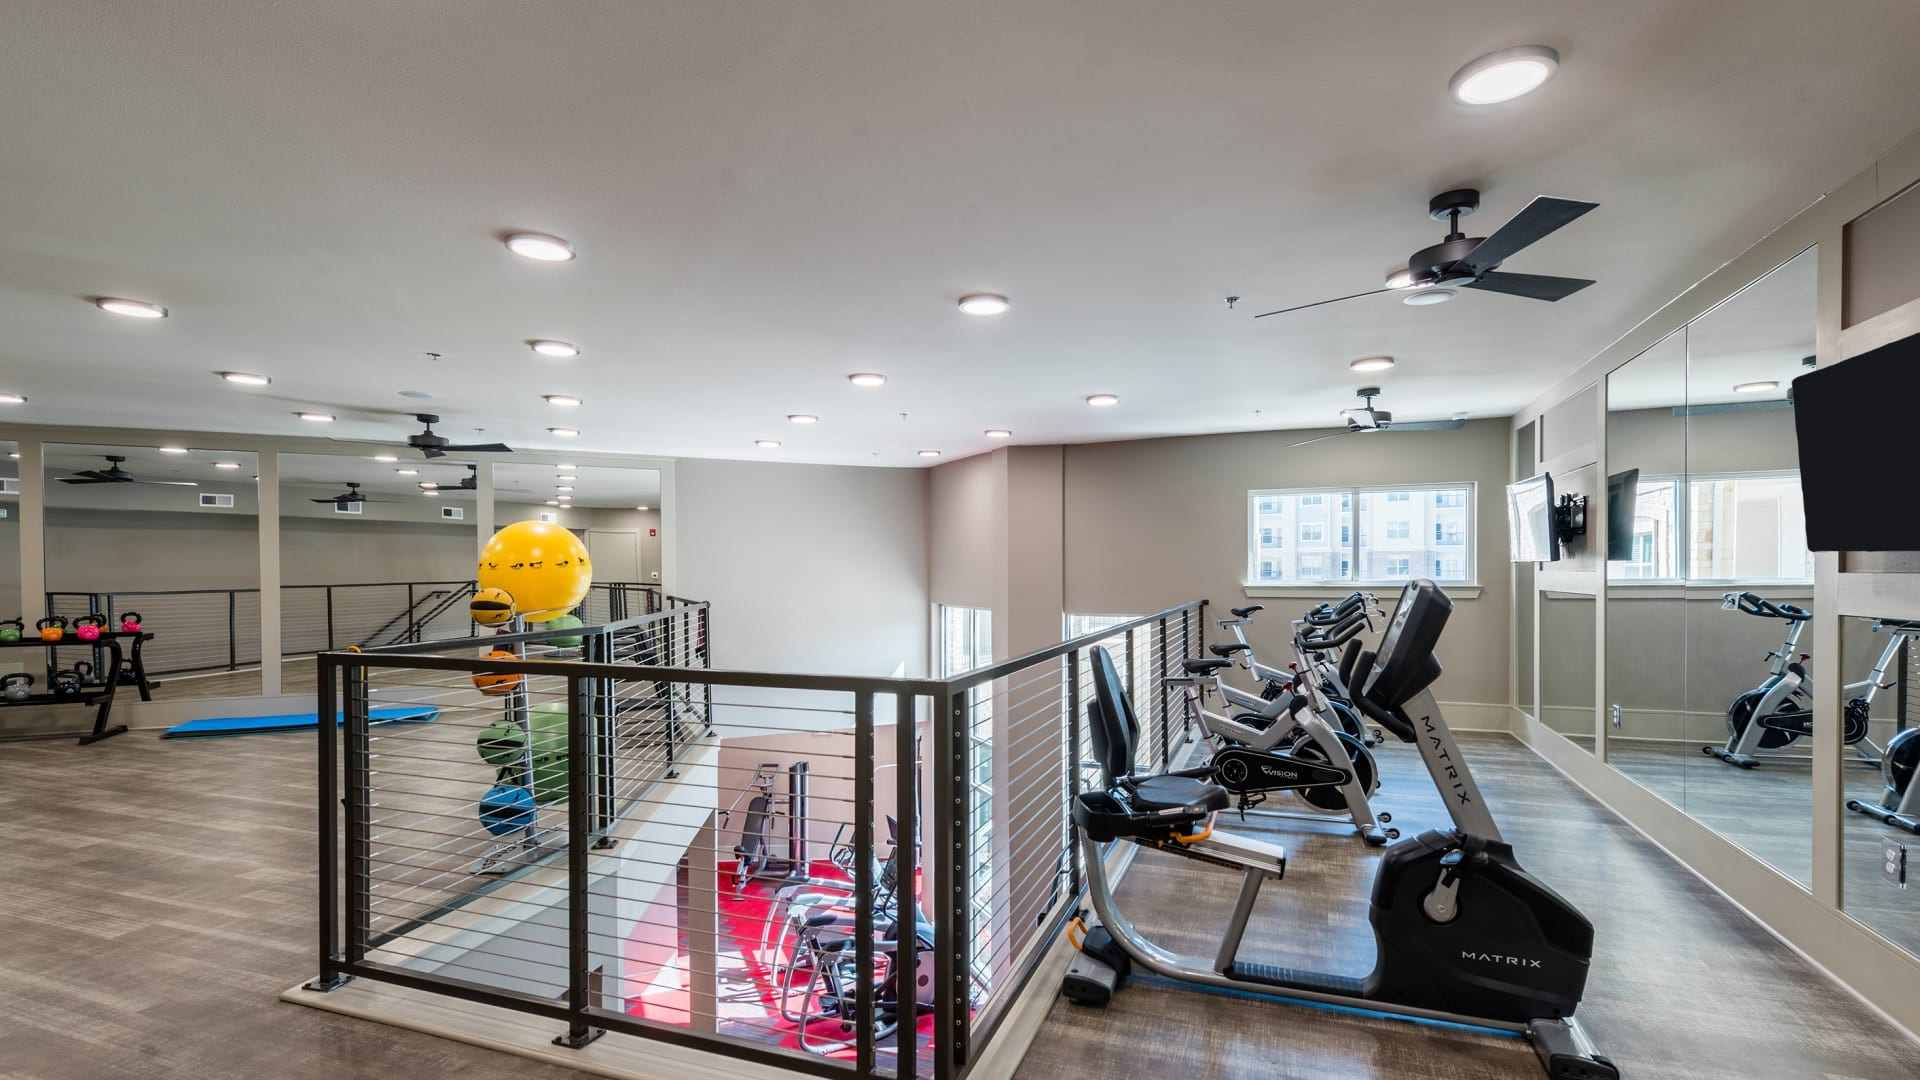 2-Story Fitness Center with Spin Studio